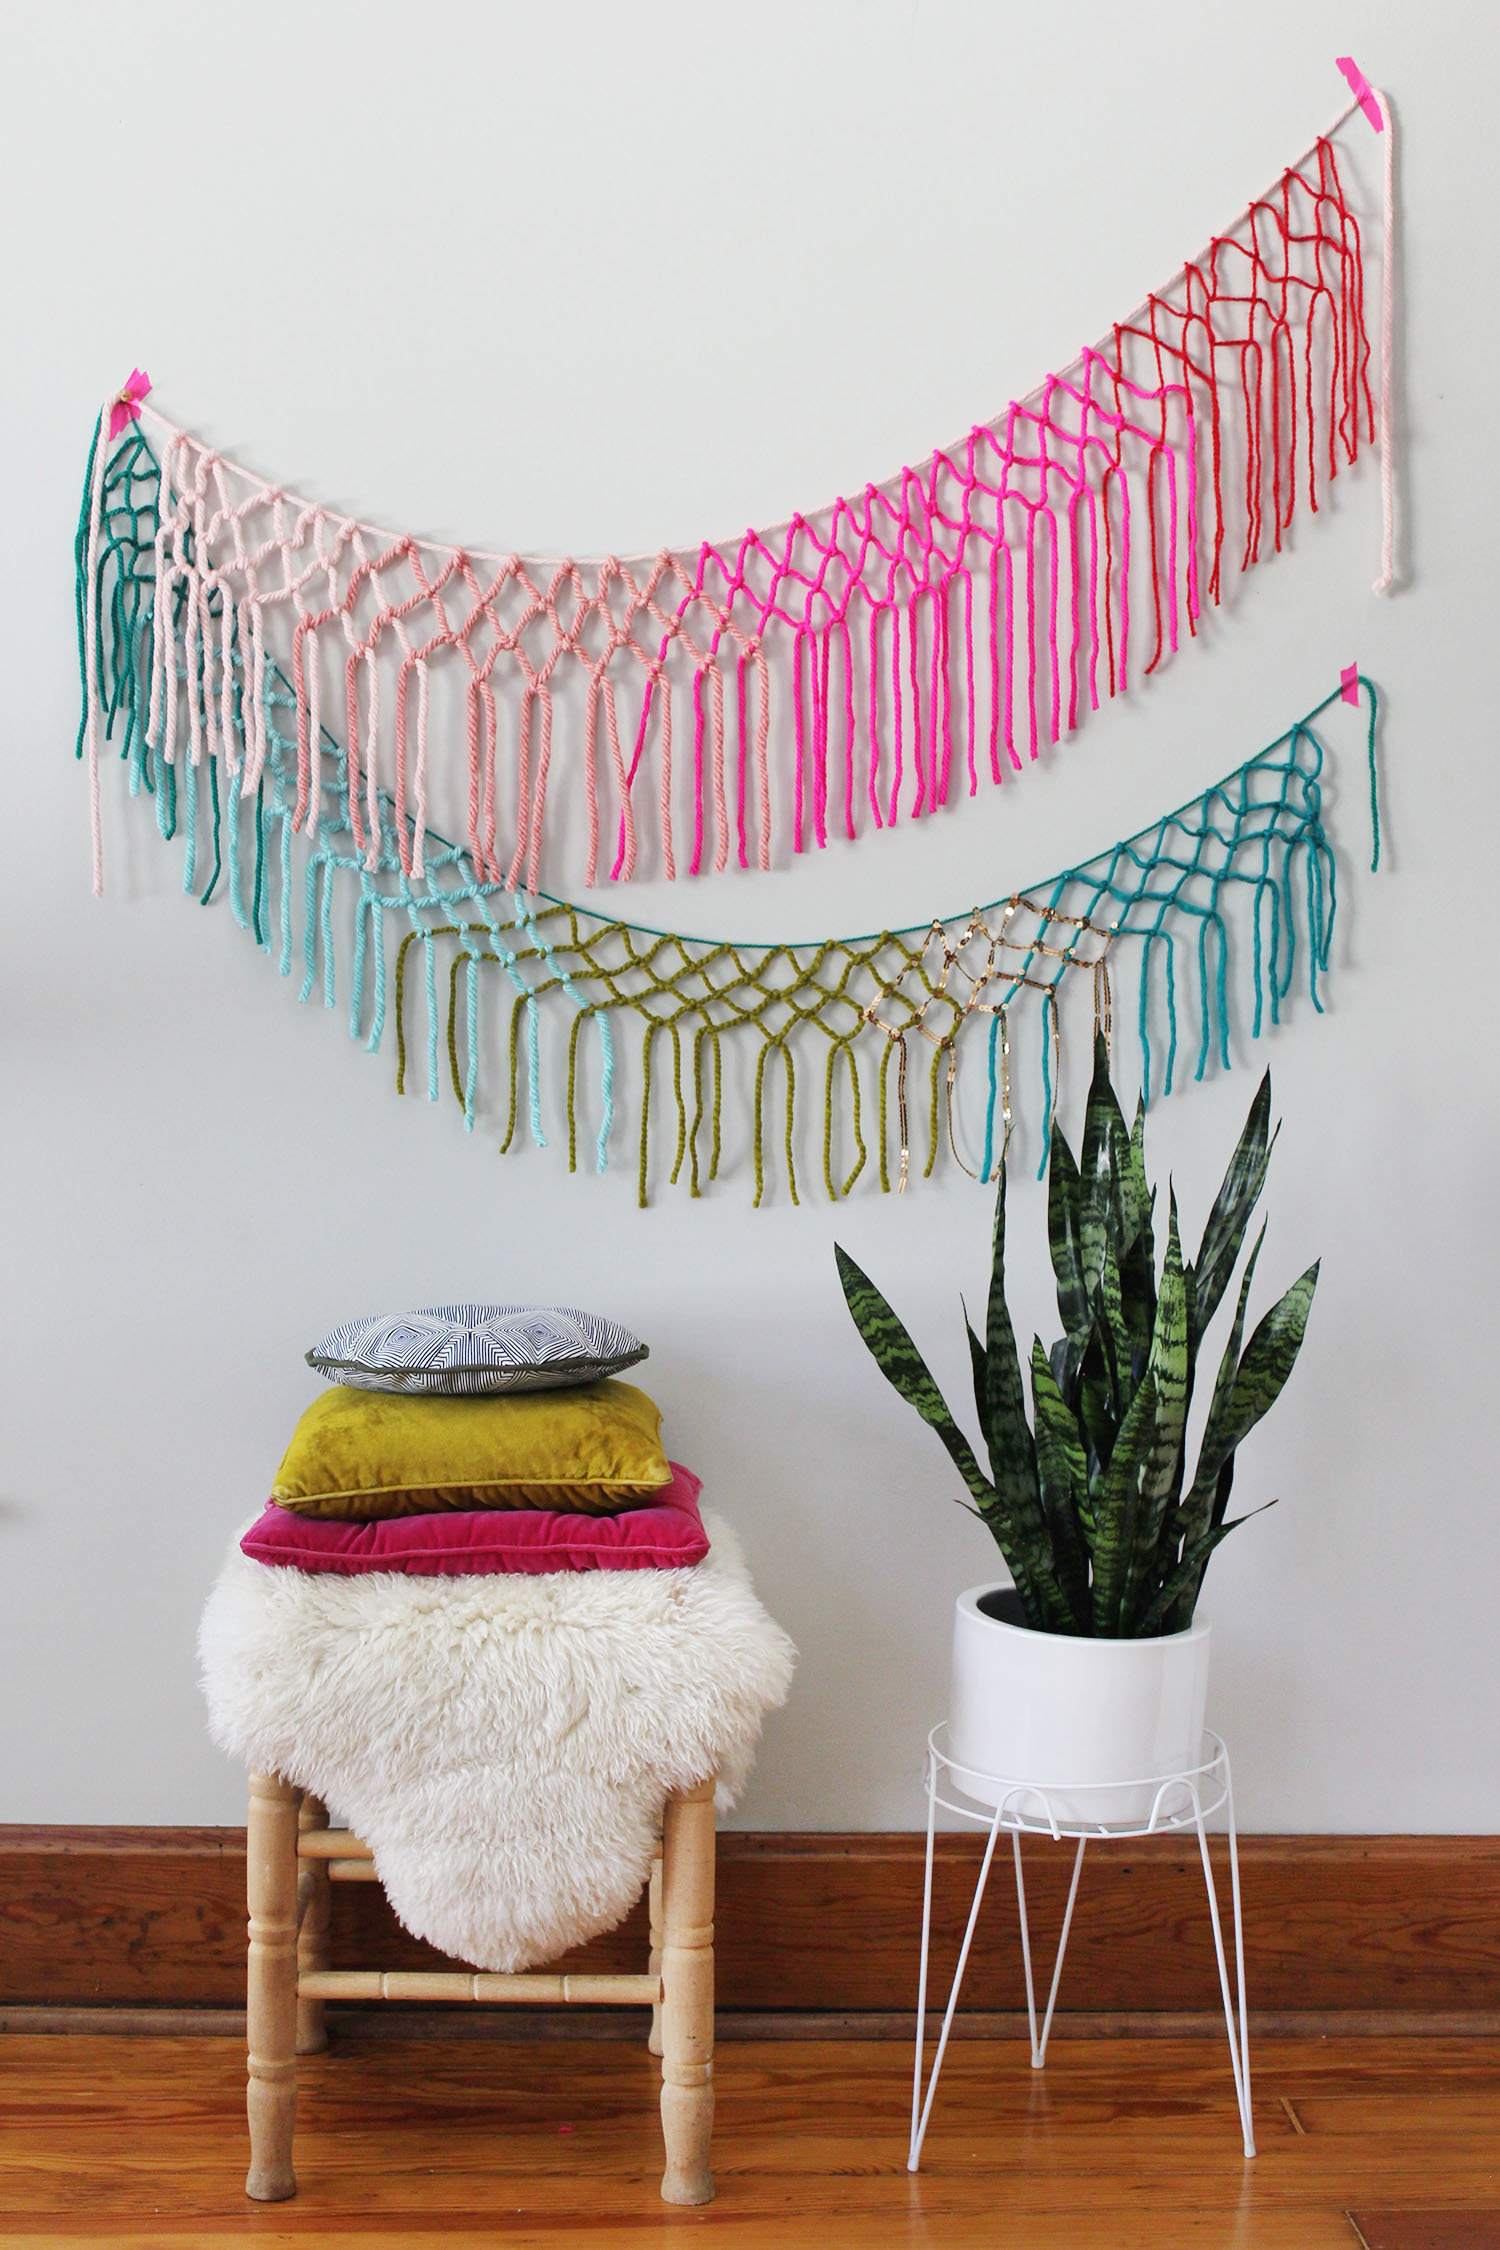 Diy macrame wall garland